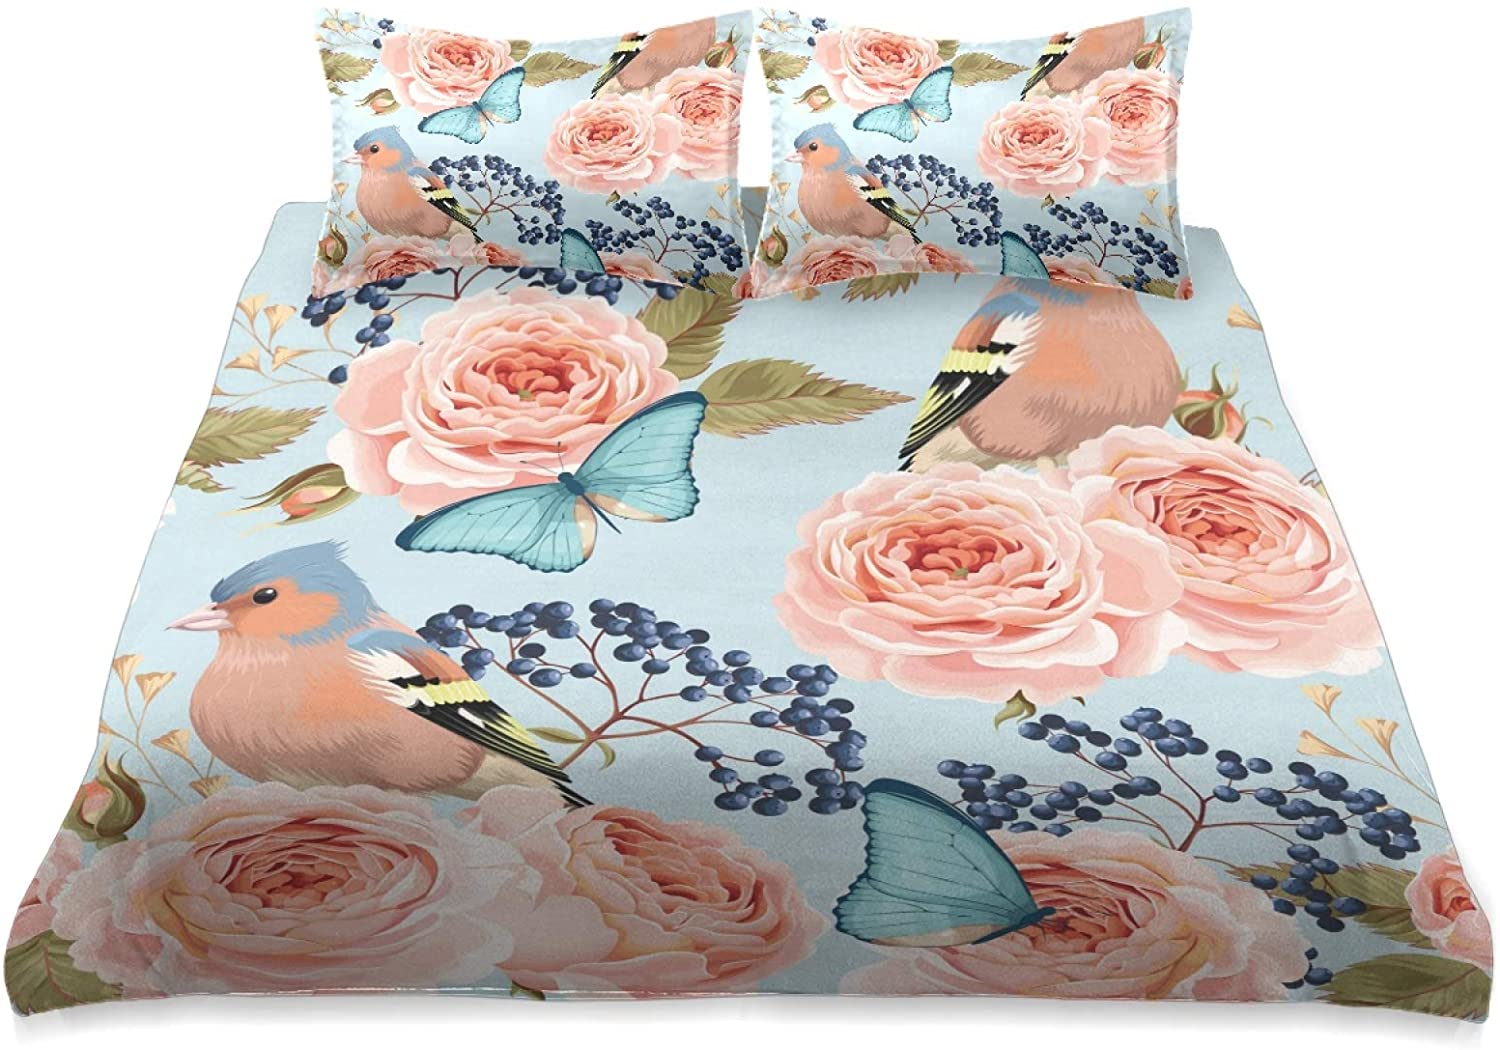 Pac Mac King Comforter Set Cover Floral Flower Rose Butterfly Bird Washed Duvet Cover King Size Set -1x King Size Bedding Comforter Cover & 2 x Pillow Cases